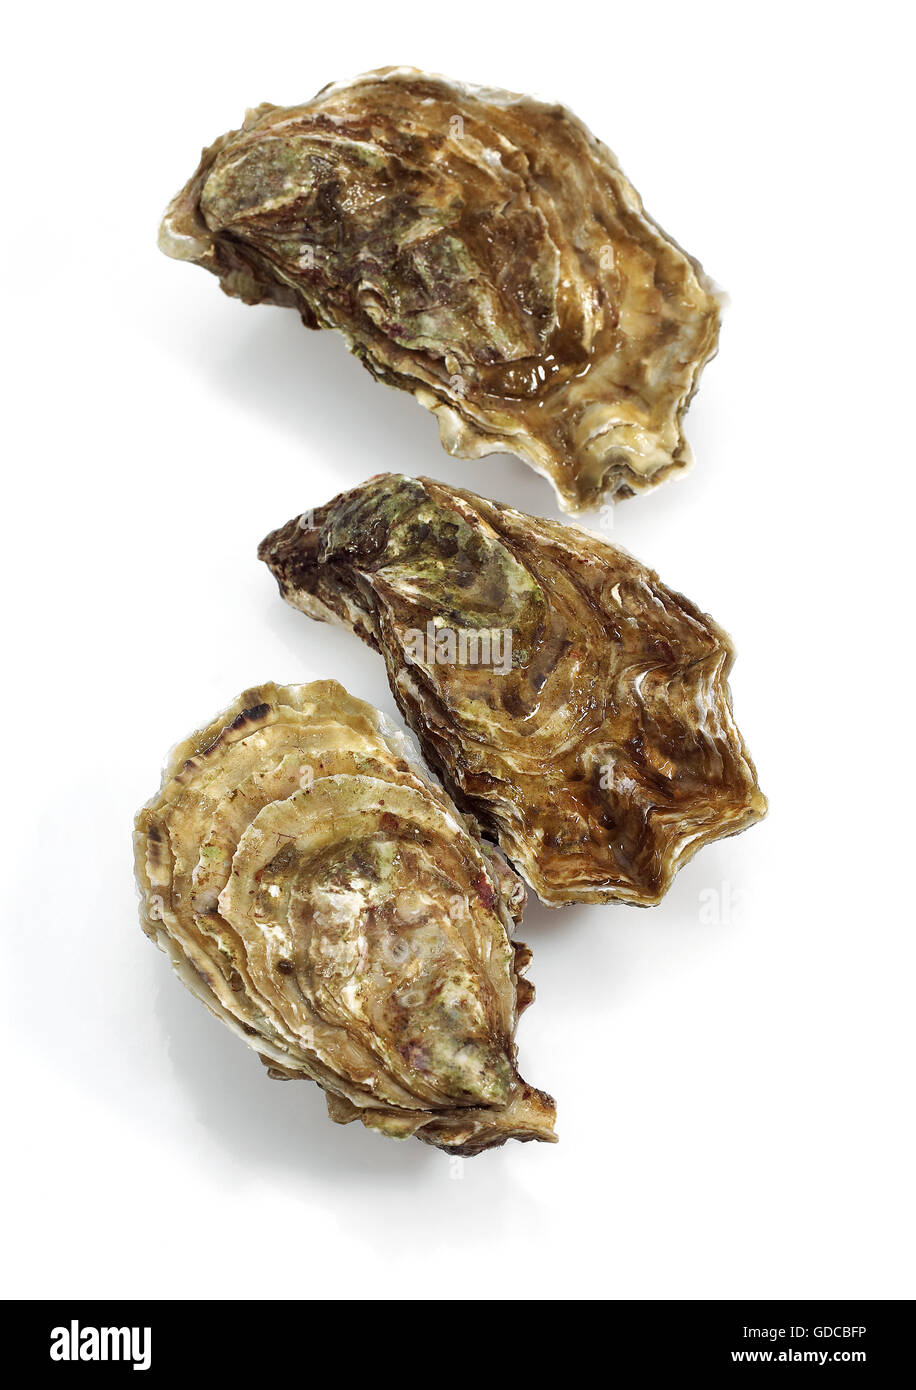 French Oyster Called Marennes d'Oleron, ostrea edulis, Seafoods against White Background 065173 Gerard LACZ - Stock Image